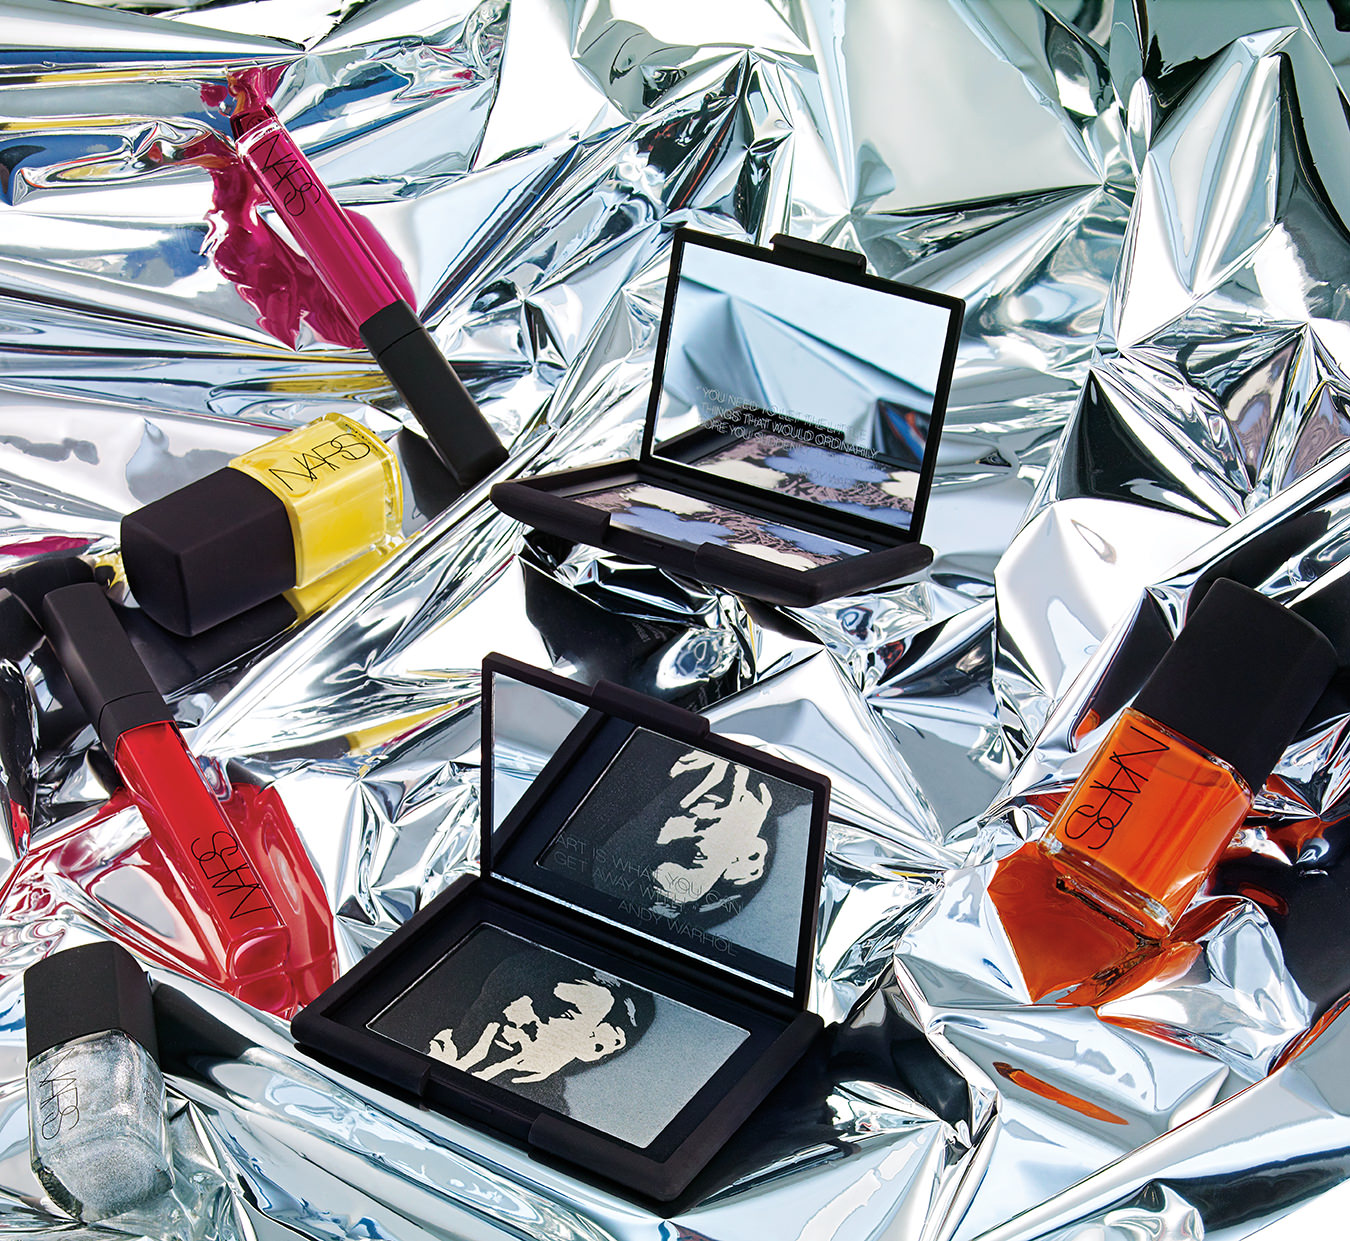 NUVO Magazine: Nars's Andy Warhol Collection